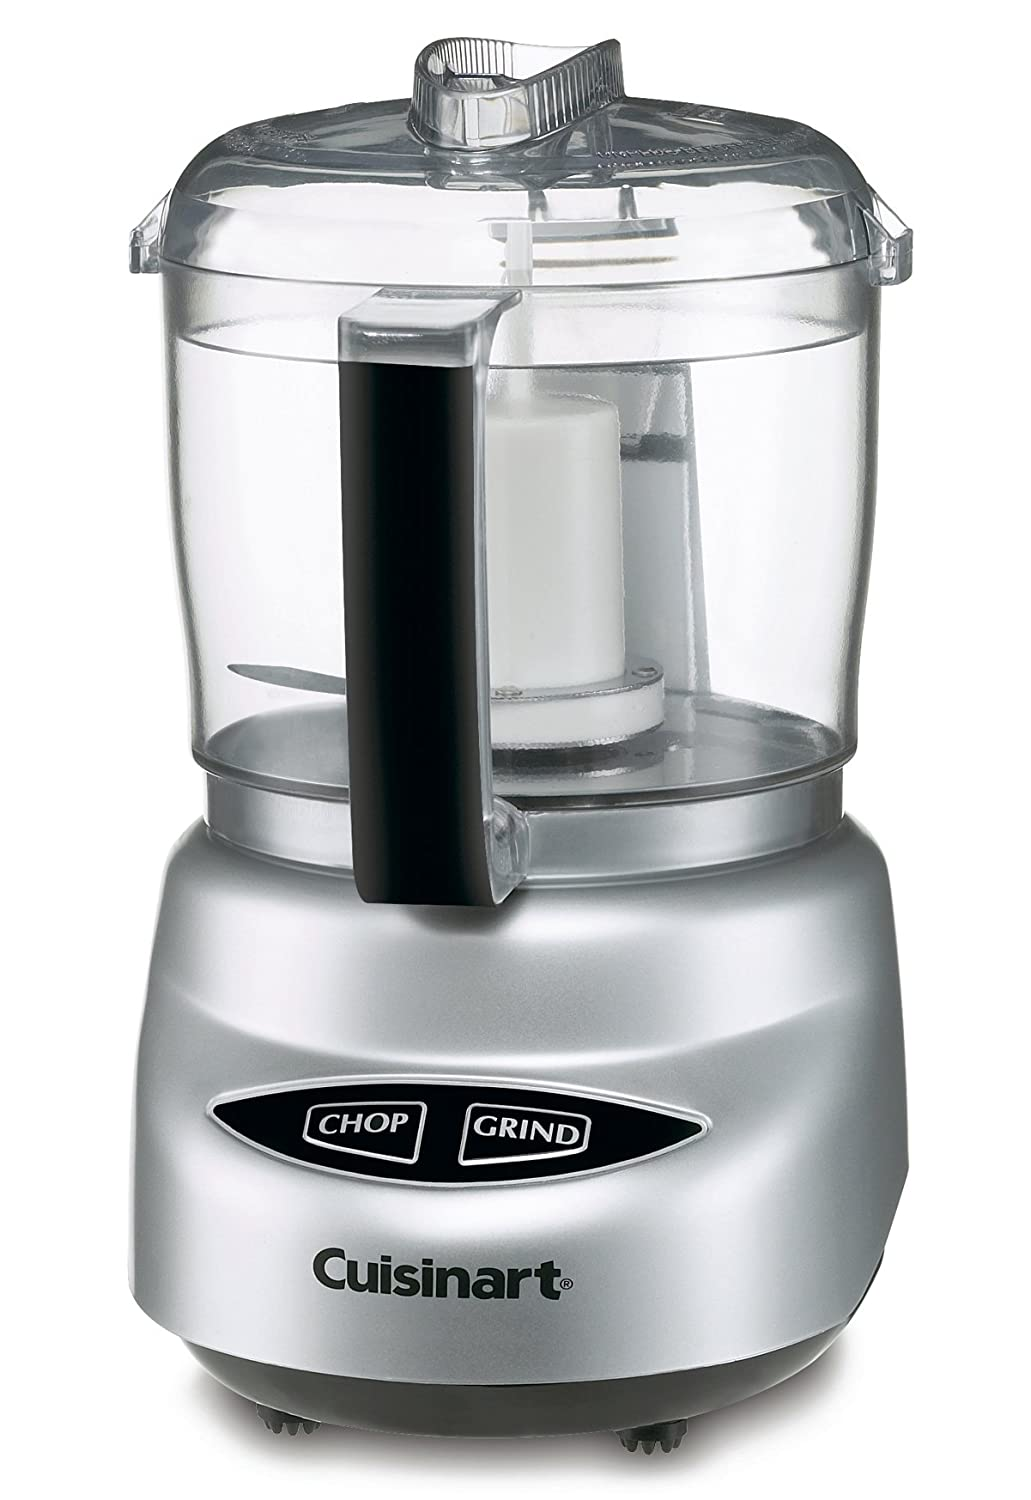 Cuisinart Food Processor Reversible Blades